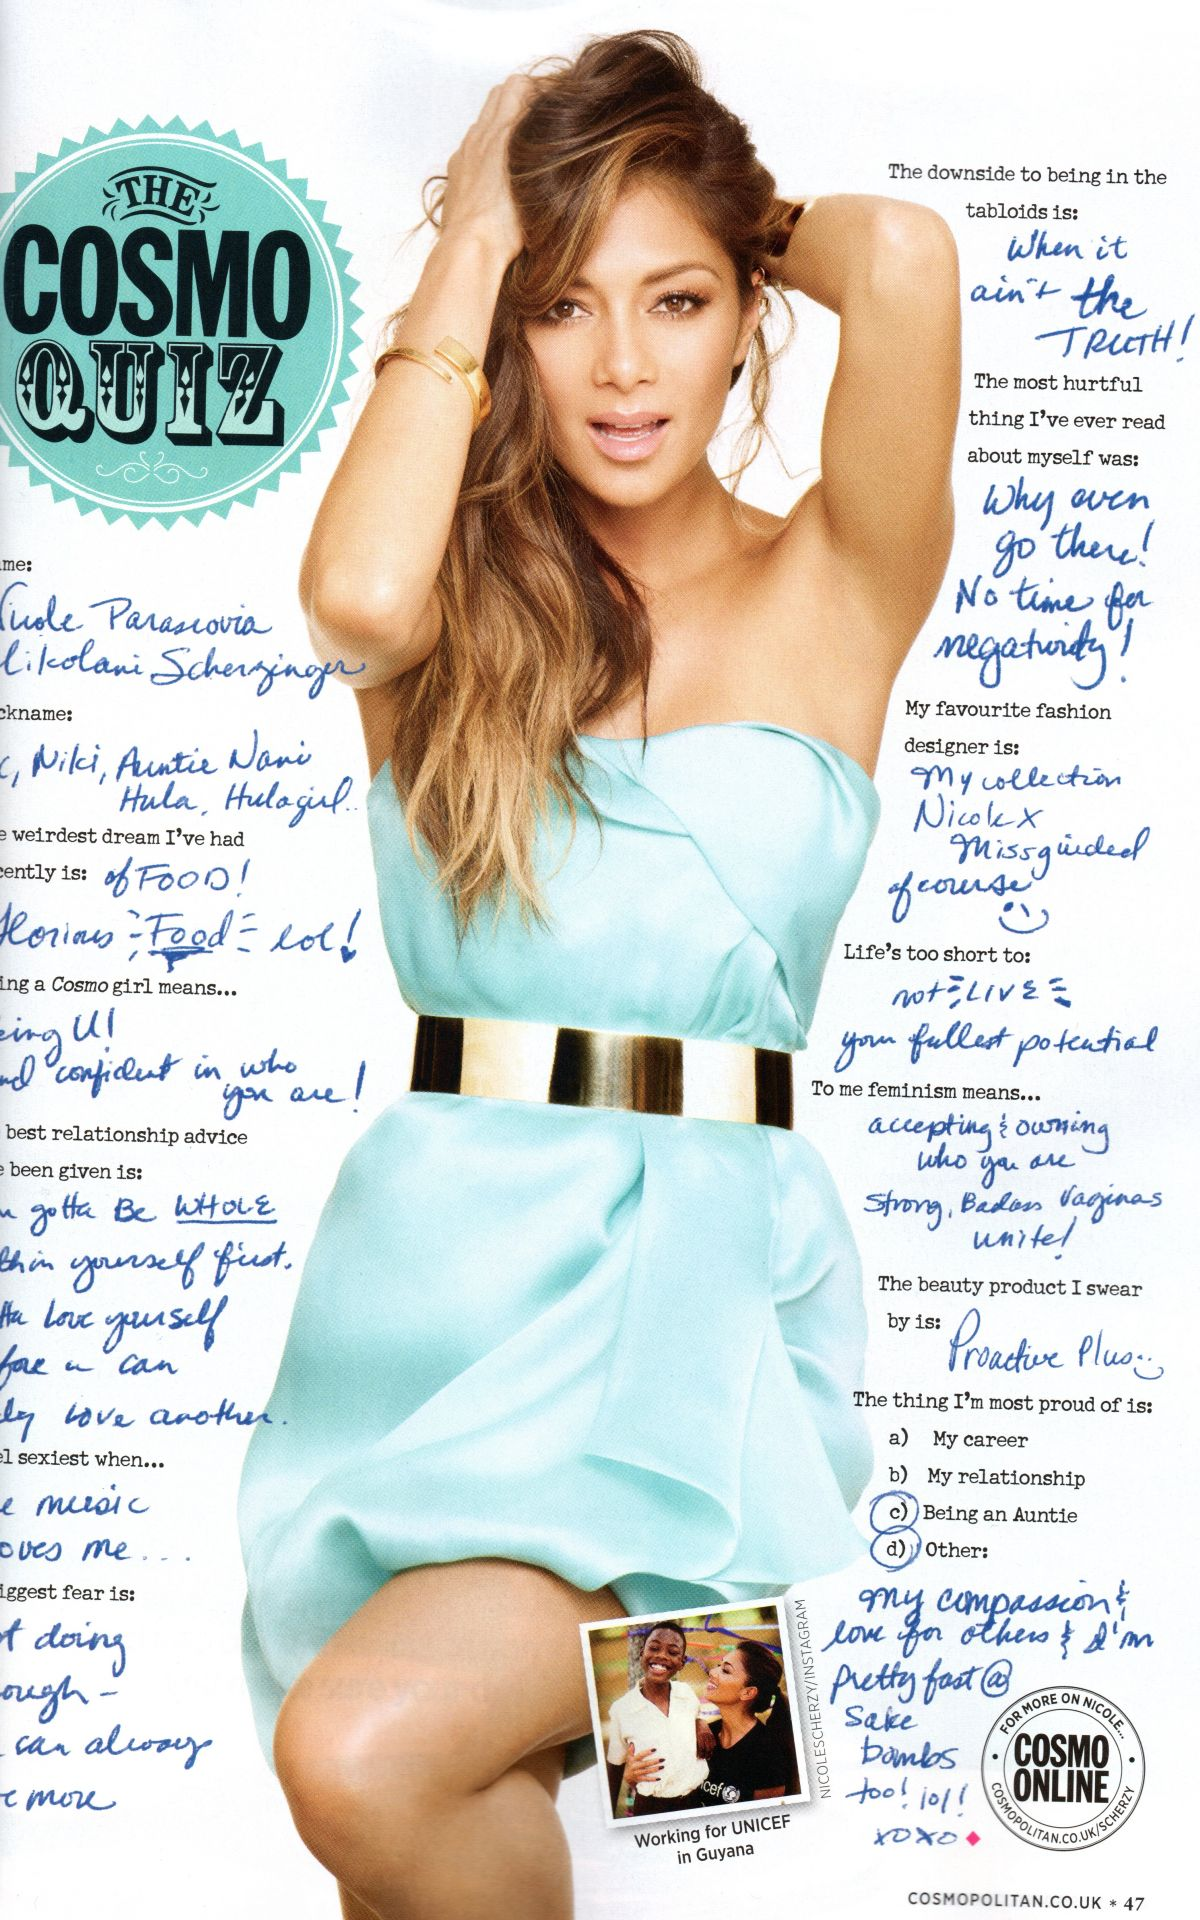 NICOLE SCHERZINGER in Cosmopolitan Magazine, August 2014 Issue